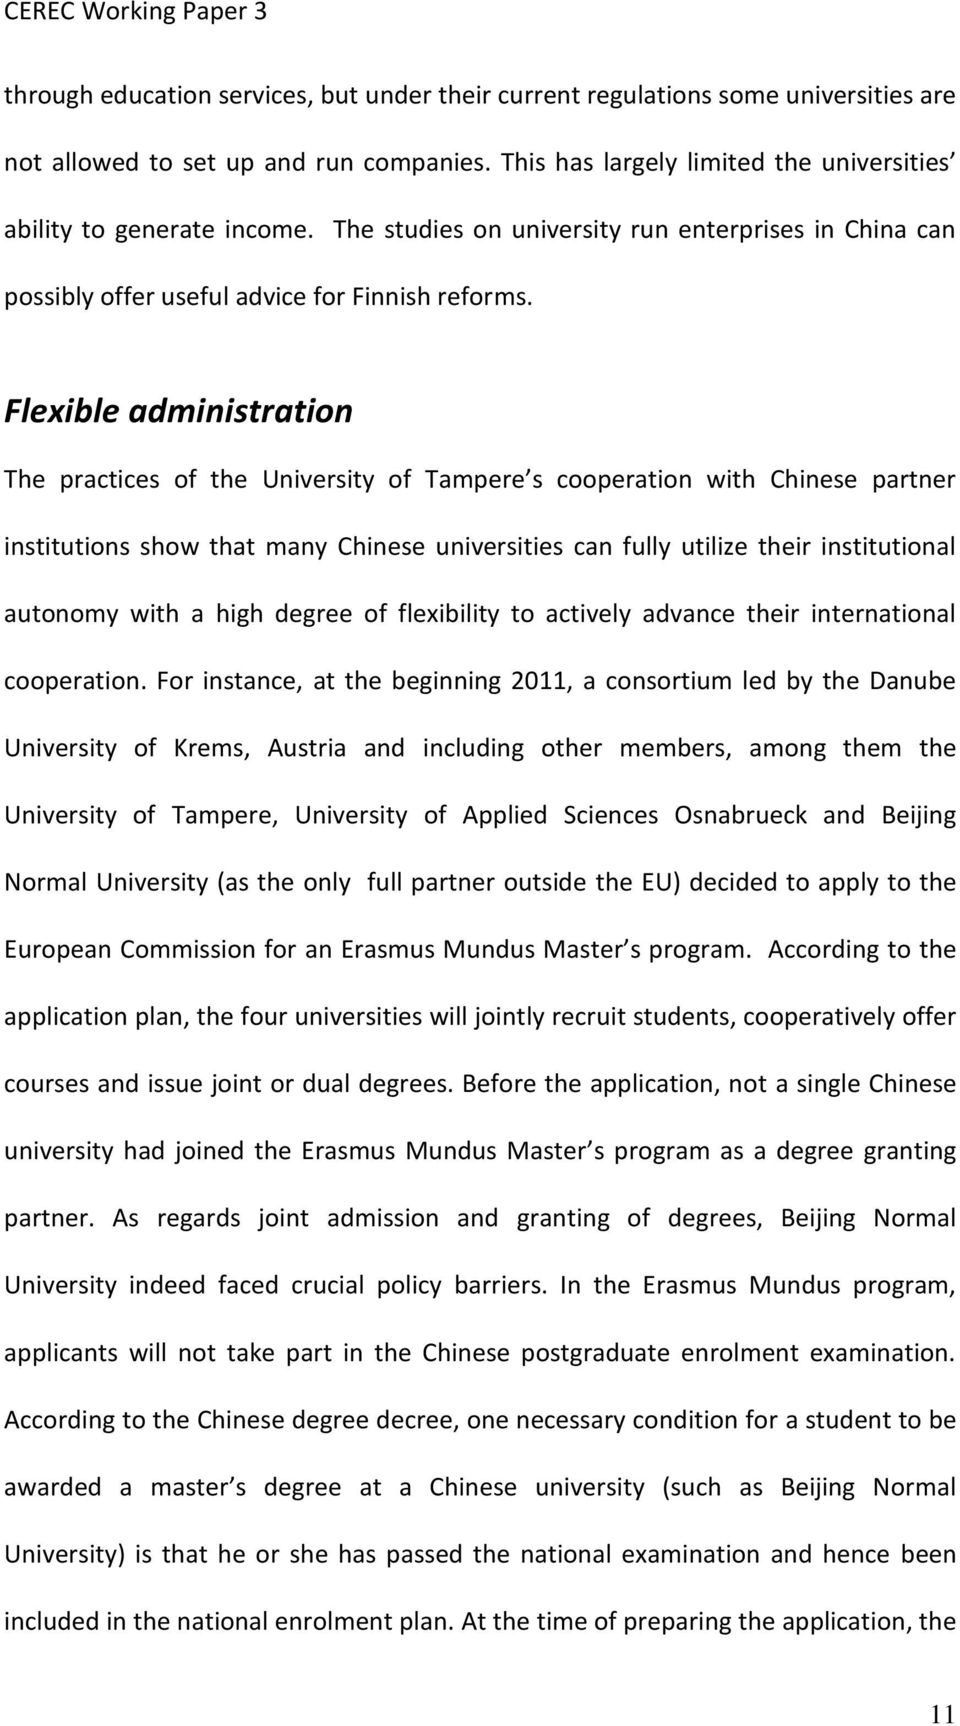 Flexible administration The practices of the University of Tampere s cooperation with Chinese partner institutions show that many Chinese universities can fully utilize their institutional autonomy